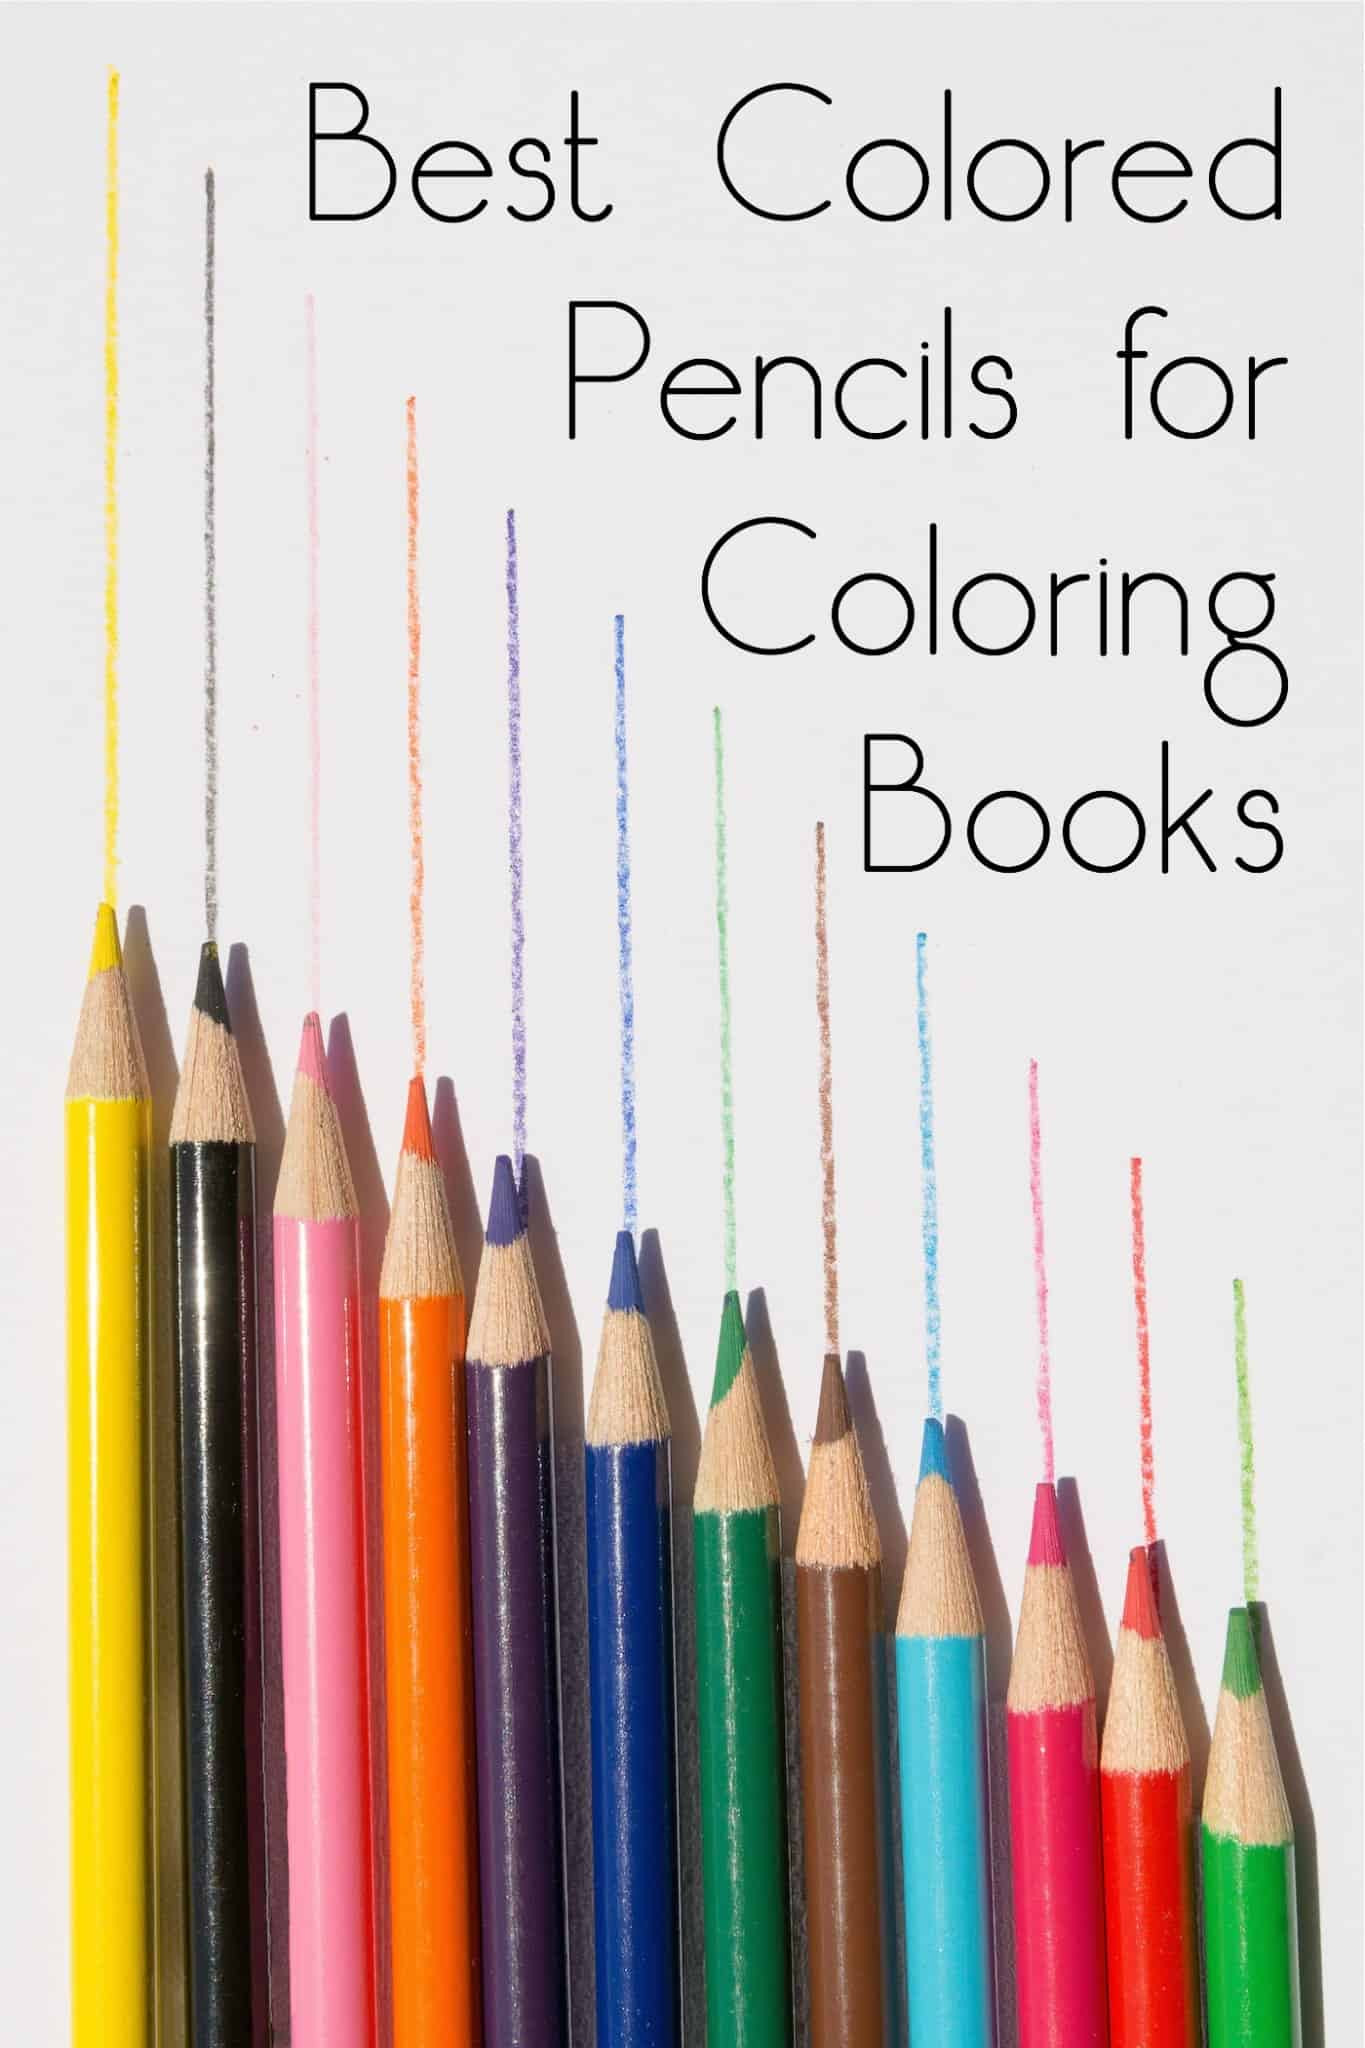 Adult Coloring Book Pencils  Best Colored Pencils for Coloring Books diycandy